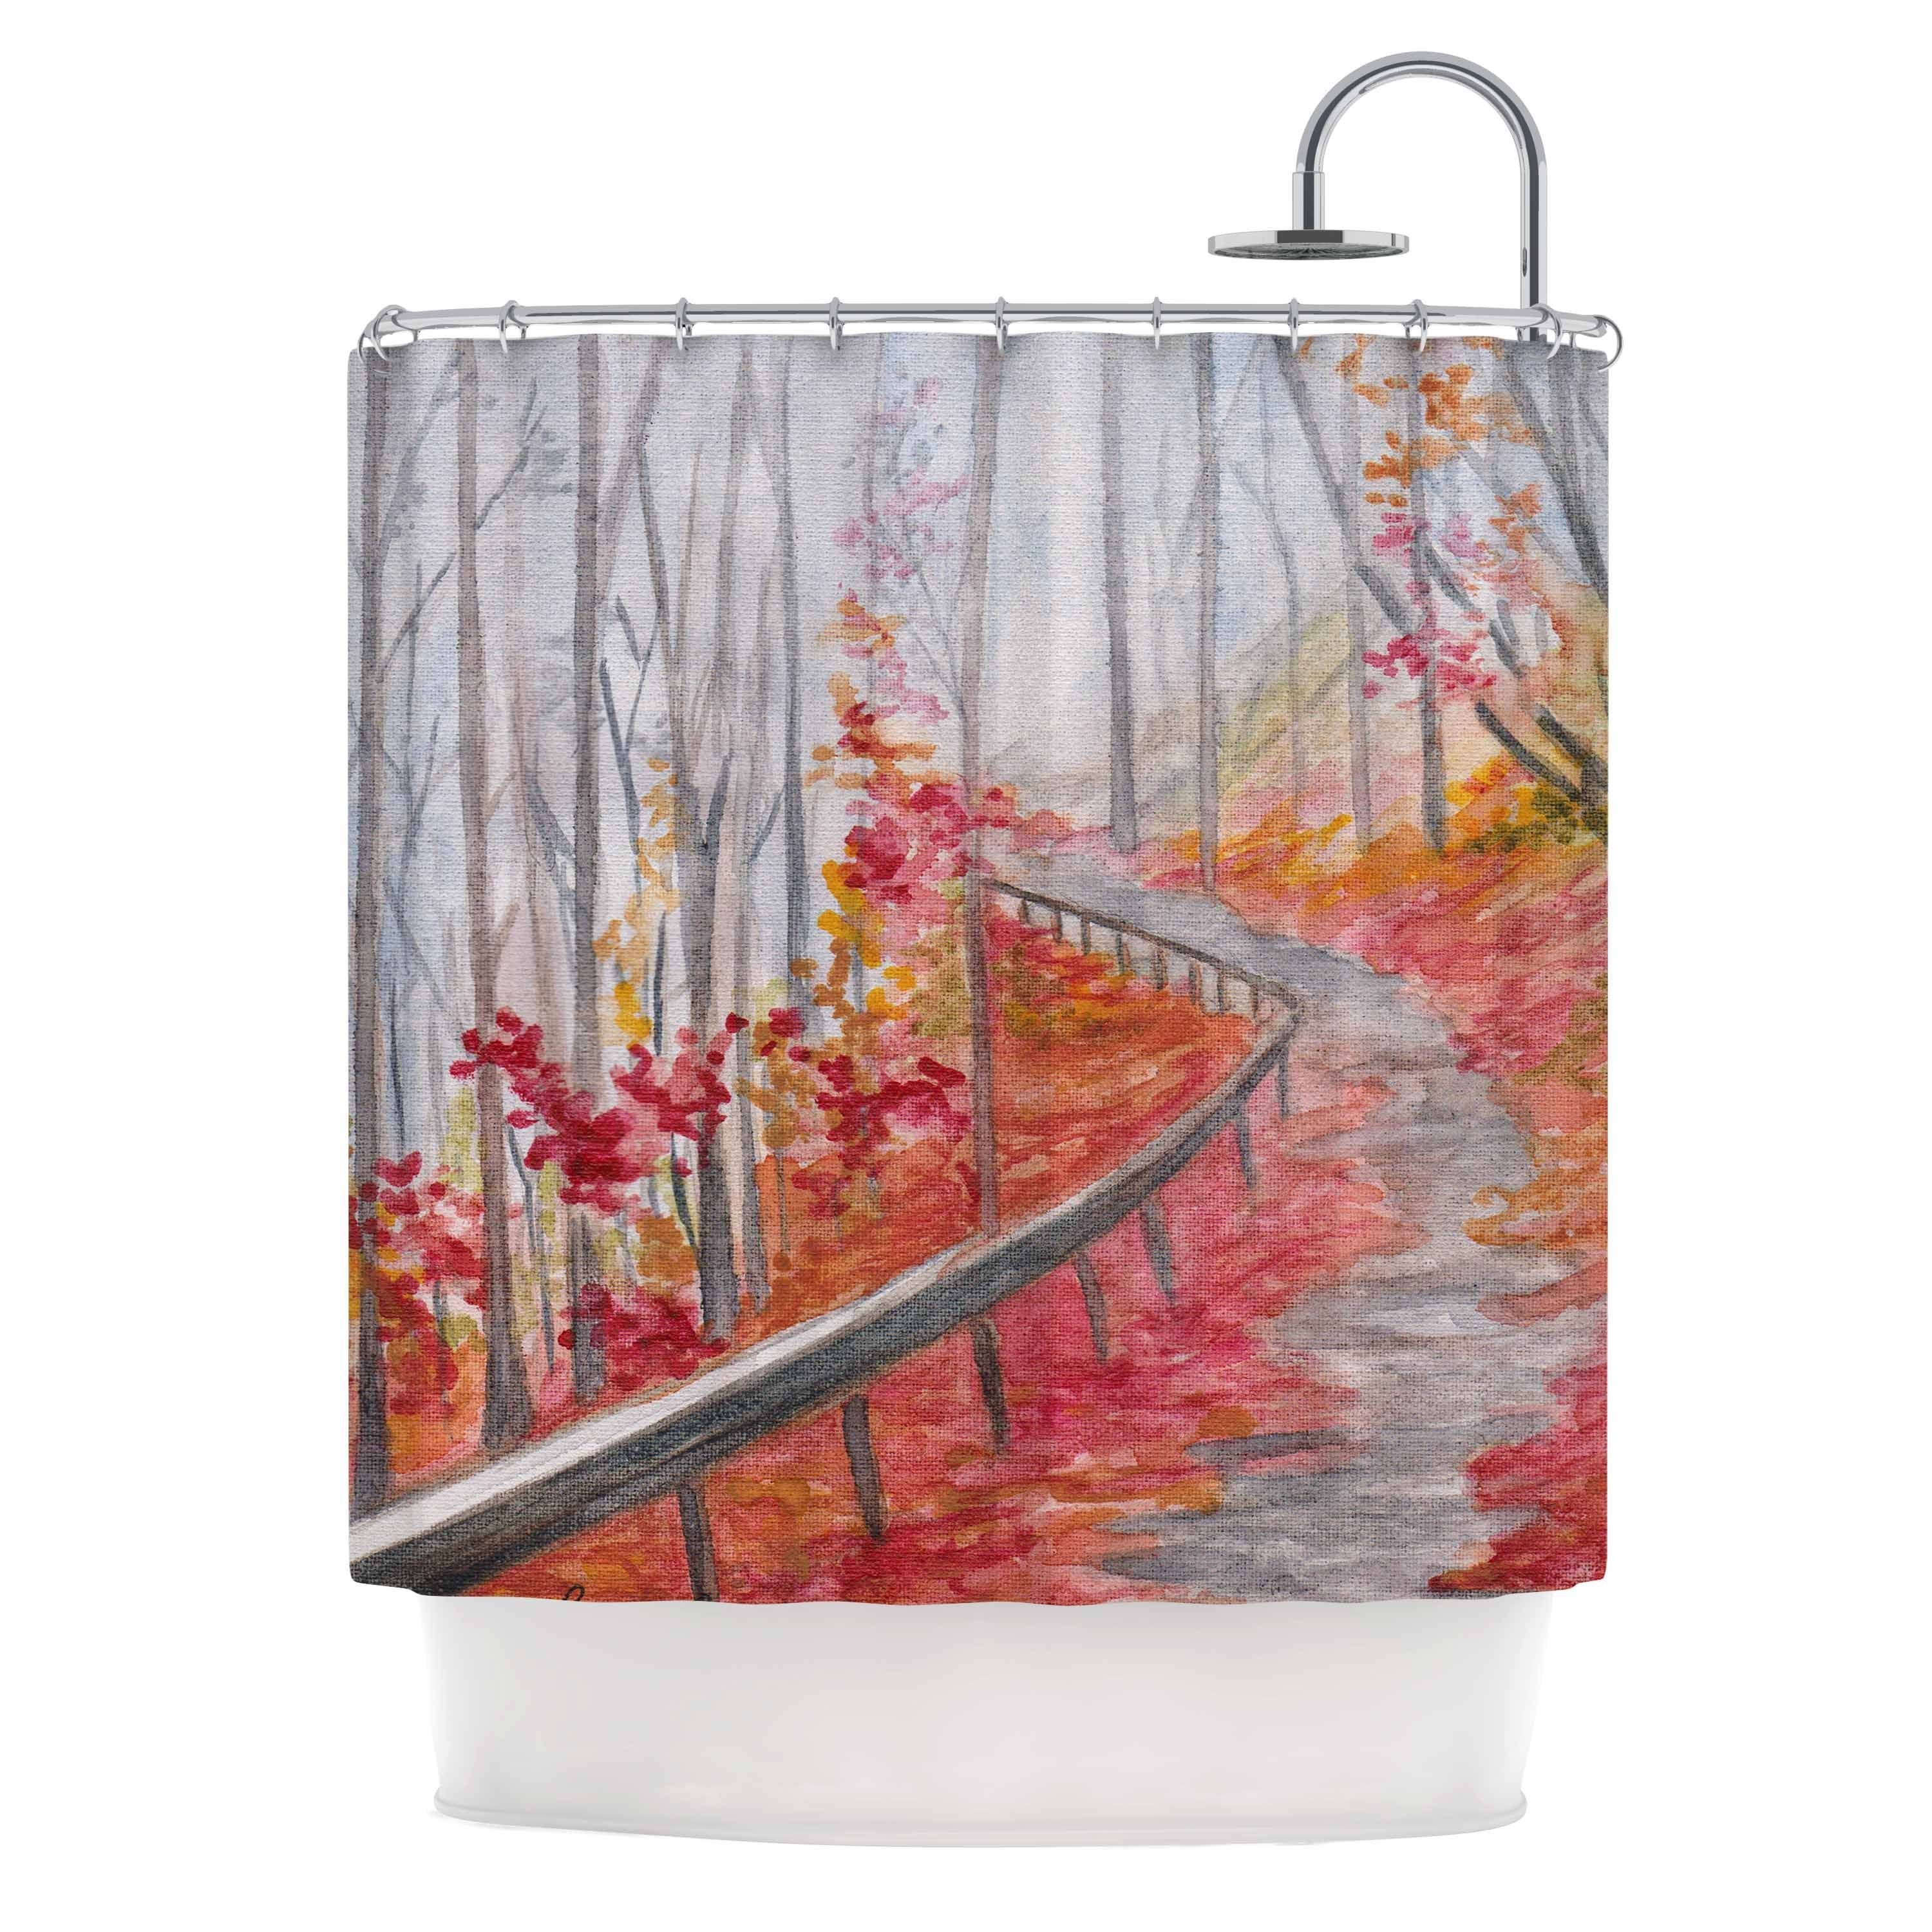 Shop Kess InHouse Rosie Brown Amicalola Falls Orange Gray Shower Curtain